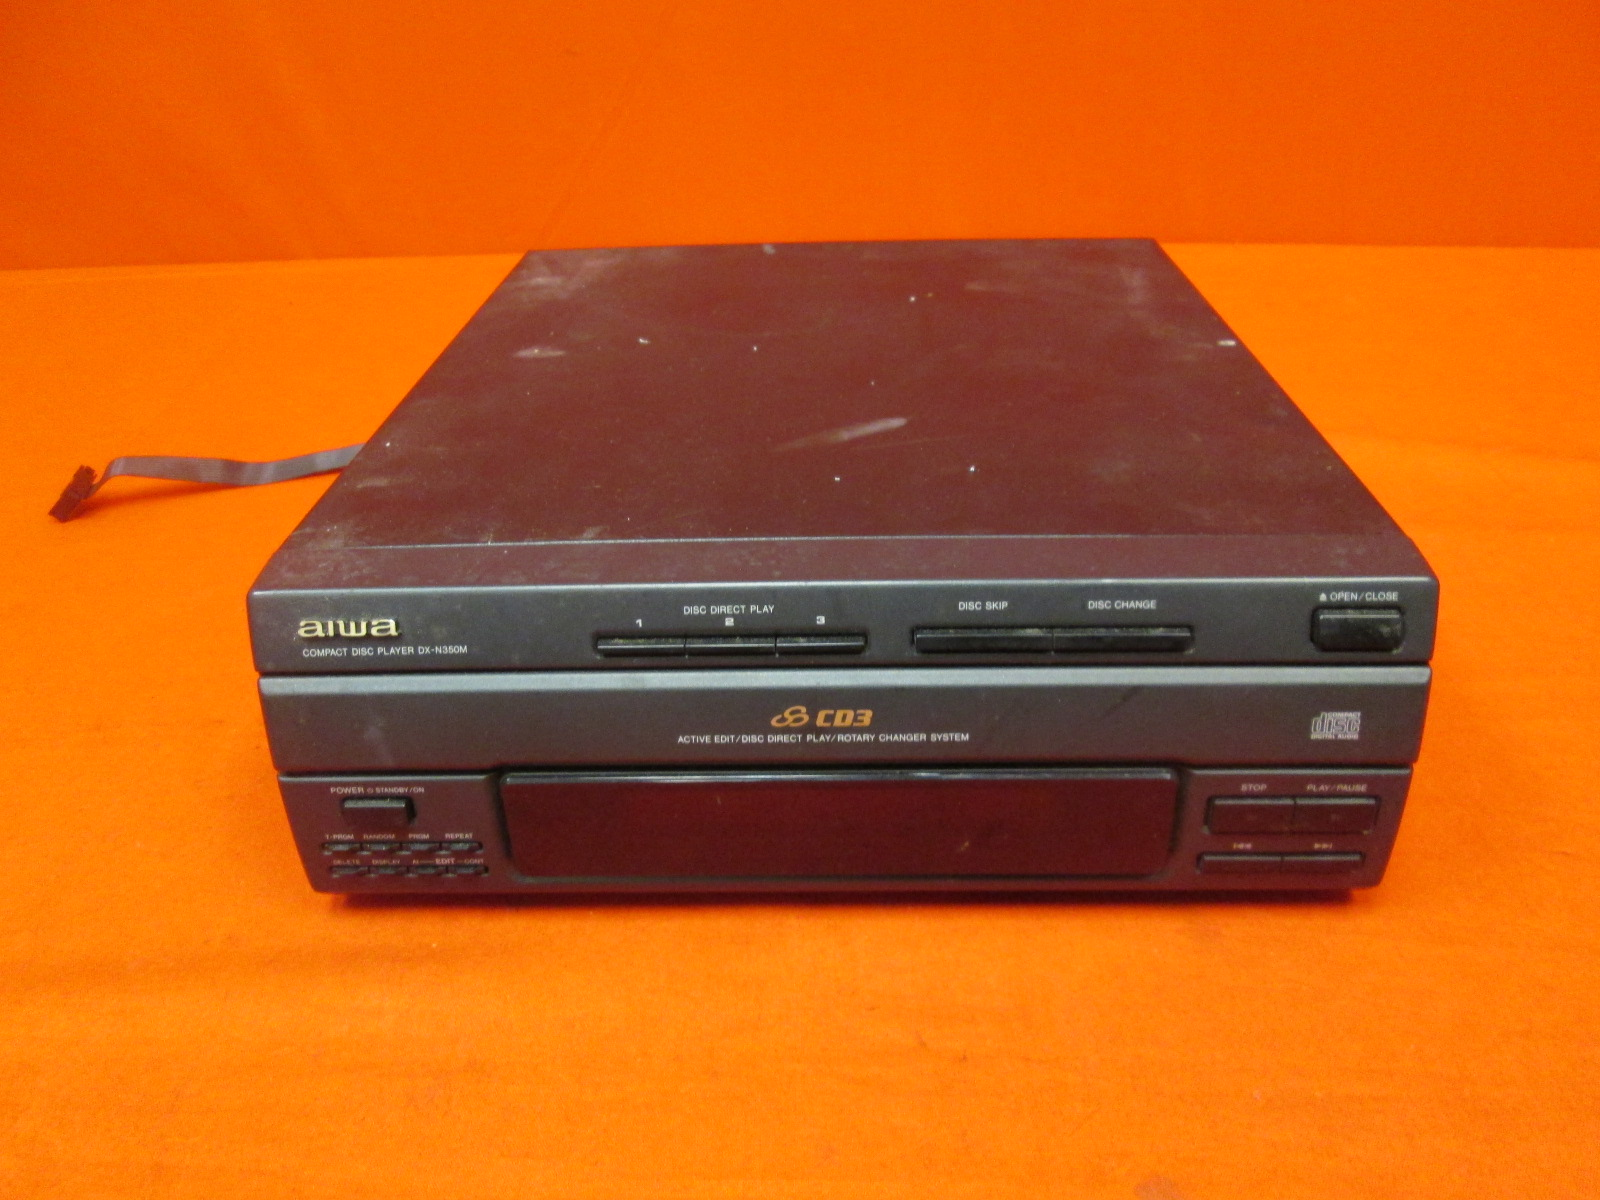 Aiwa DX-N350M Home Theater CD Player Incomplete